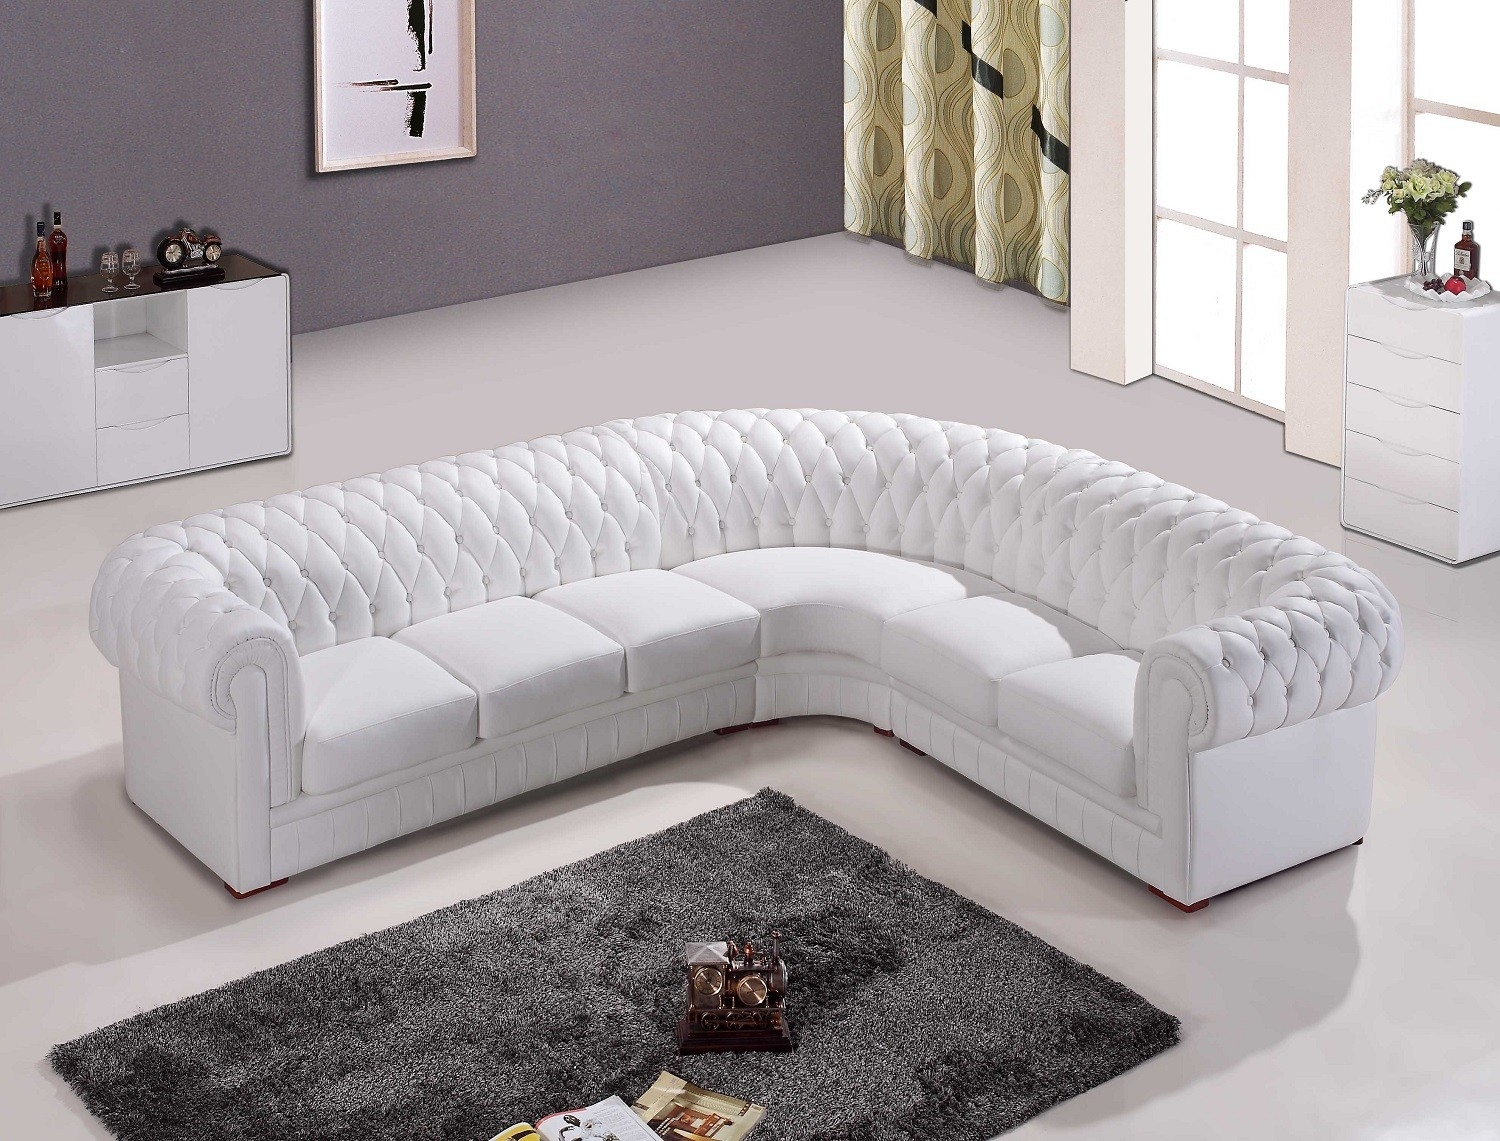 Chesterfield White Leather Corner Sofa For The Home Pinterest Regarding White Leather Corner Sofa (Image 1 of 15)